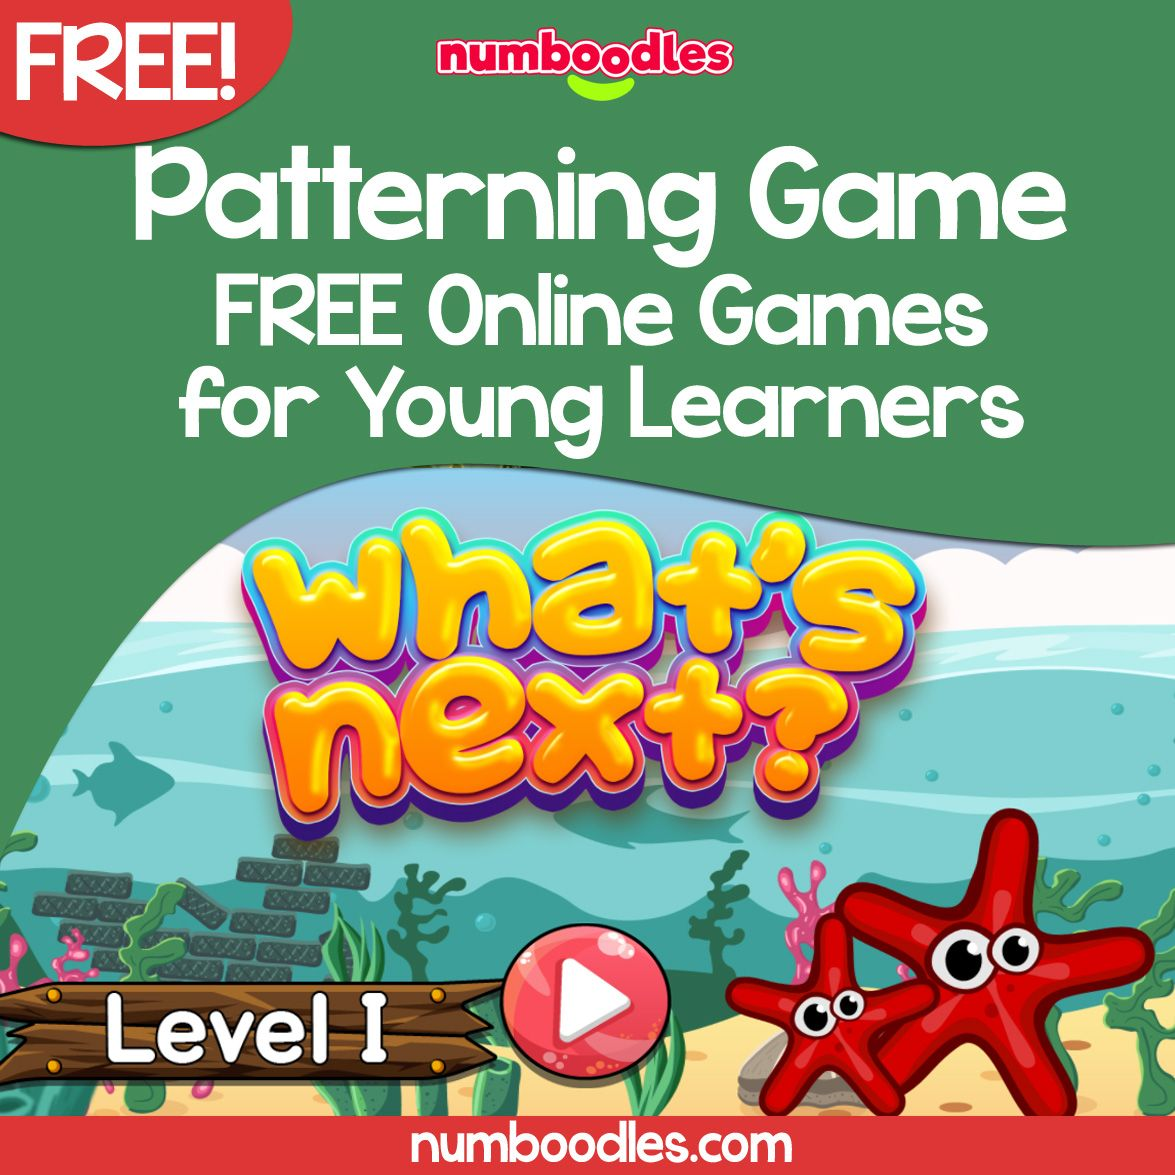 Free Patterning And Sequencing Games In 2021 Free Preschool Learning Games Kindergarten Games Educational Games For Preschoolers Preschool reading games free online